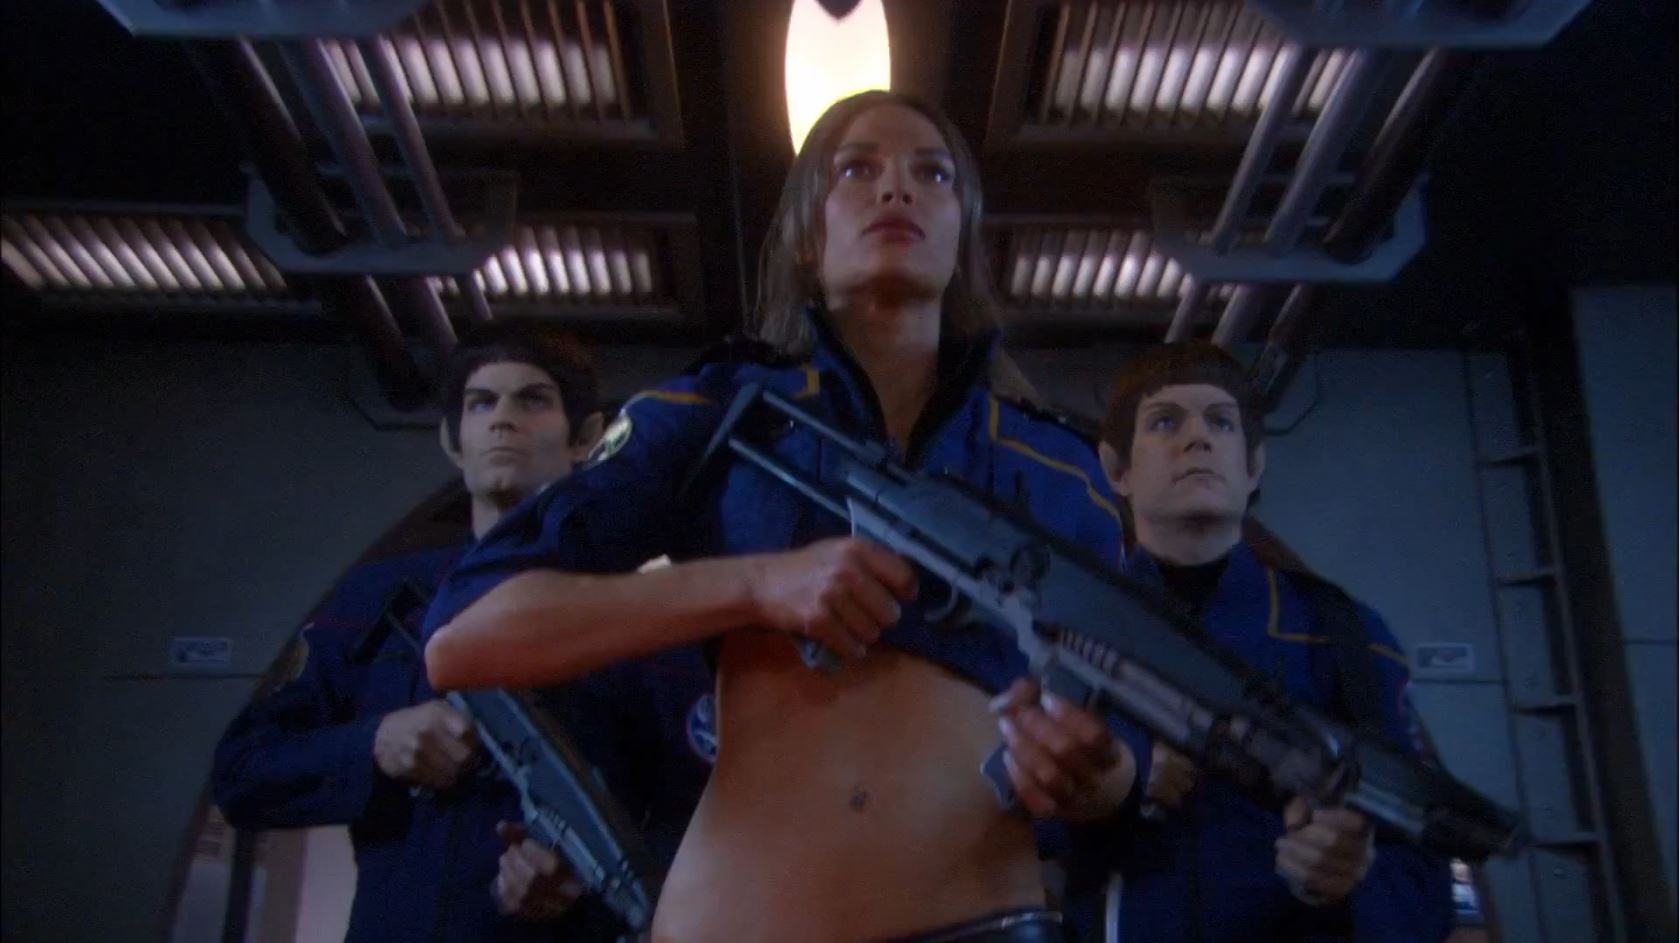 Enterprise season 4 - Jolene Blalock as T'Pol in mirror universe